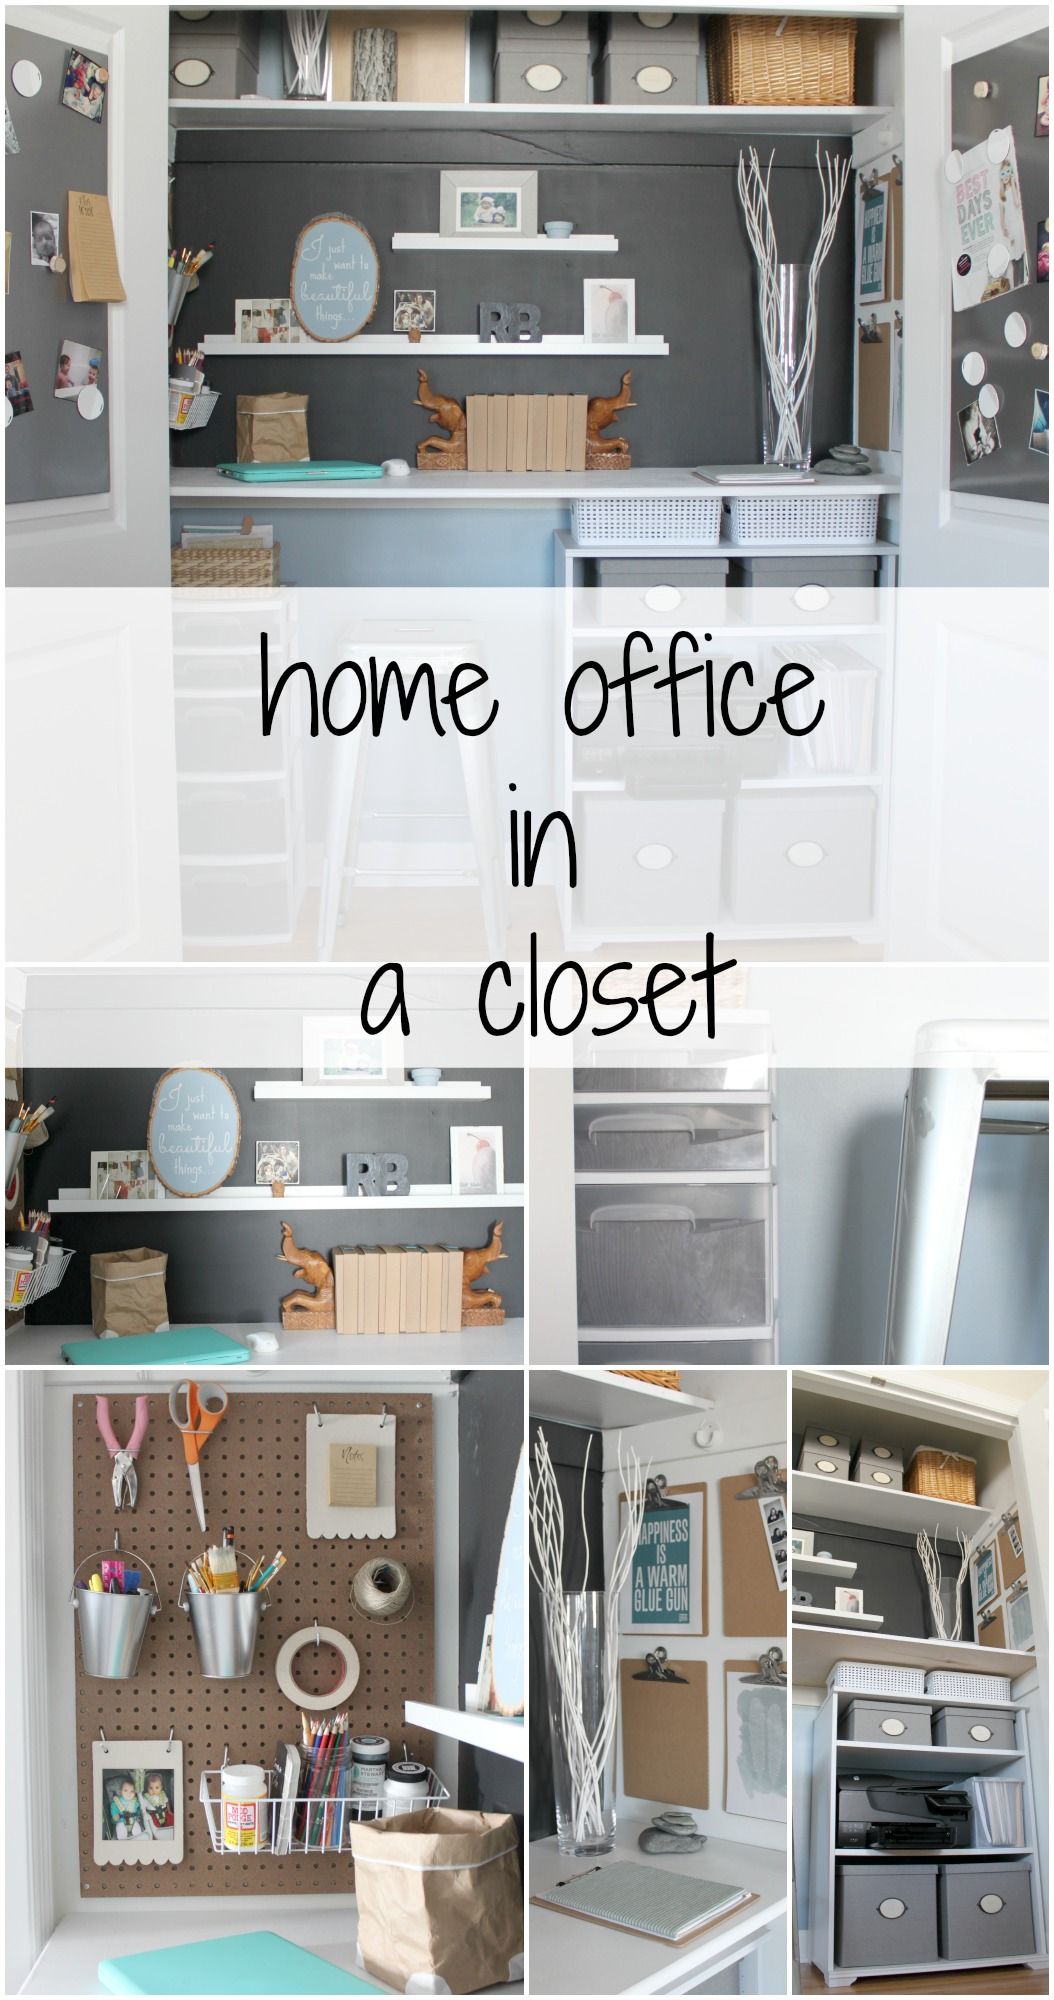 Peachy Remodelaholic Making An Organized Closet Office Craft Space Largest Home Design Picture Inspirations Pitcheantrous